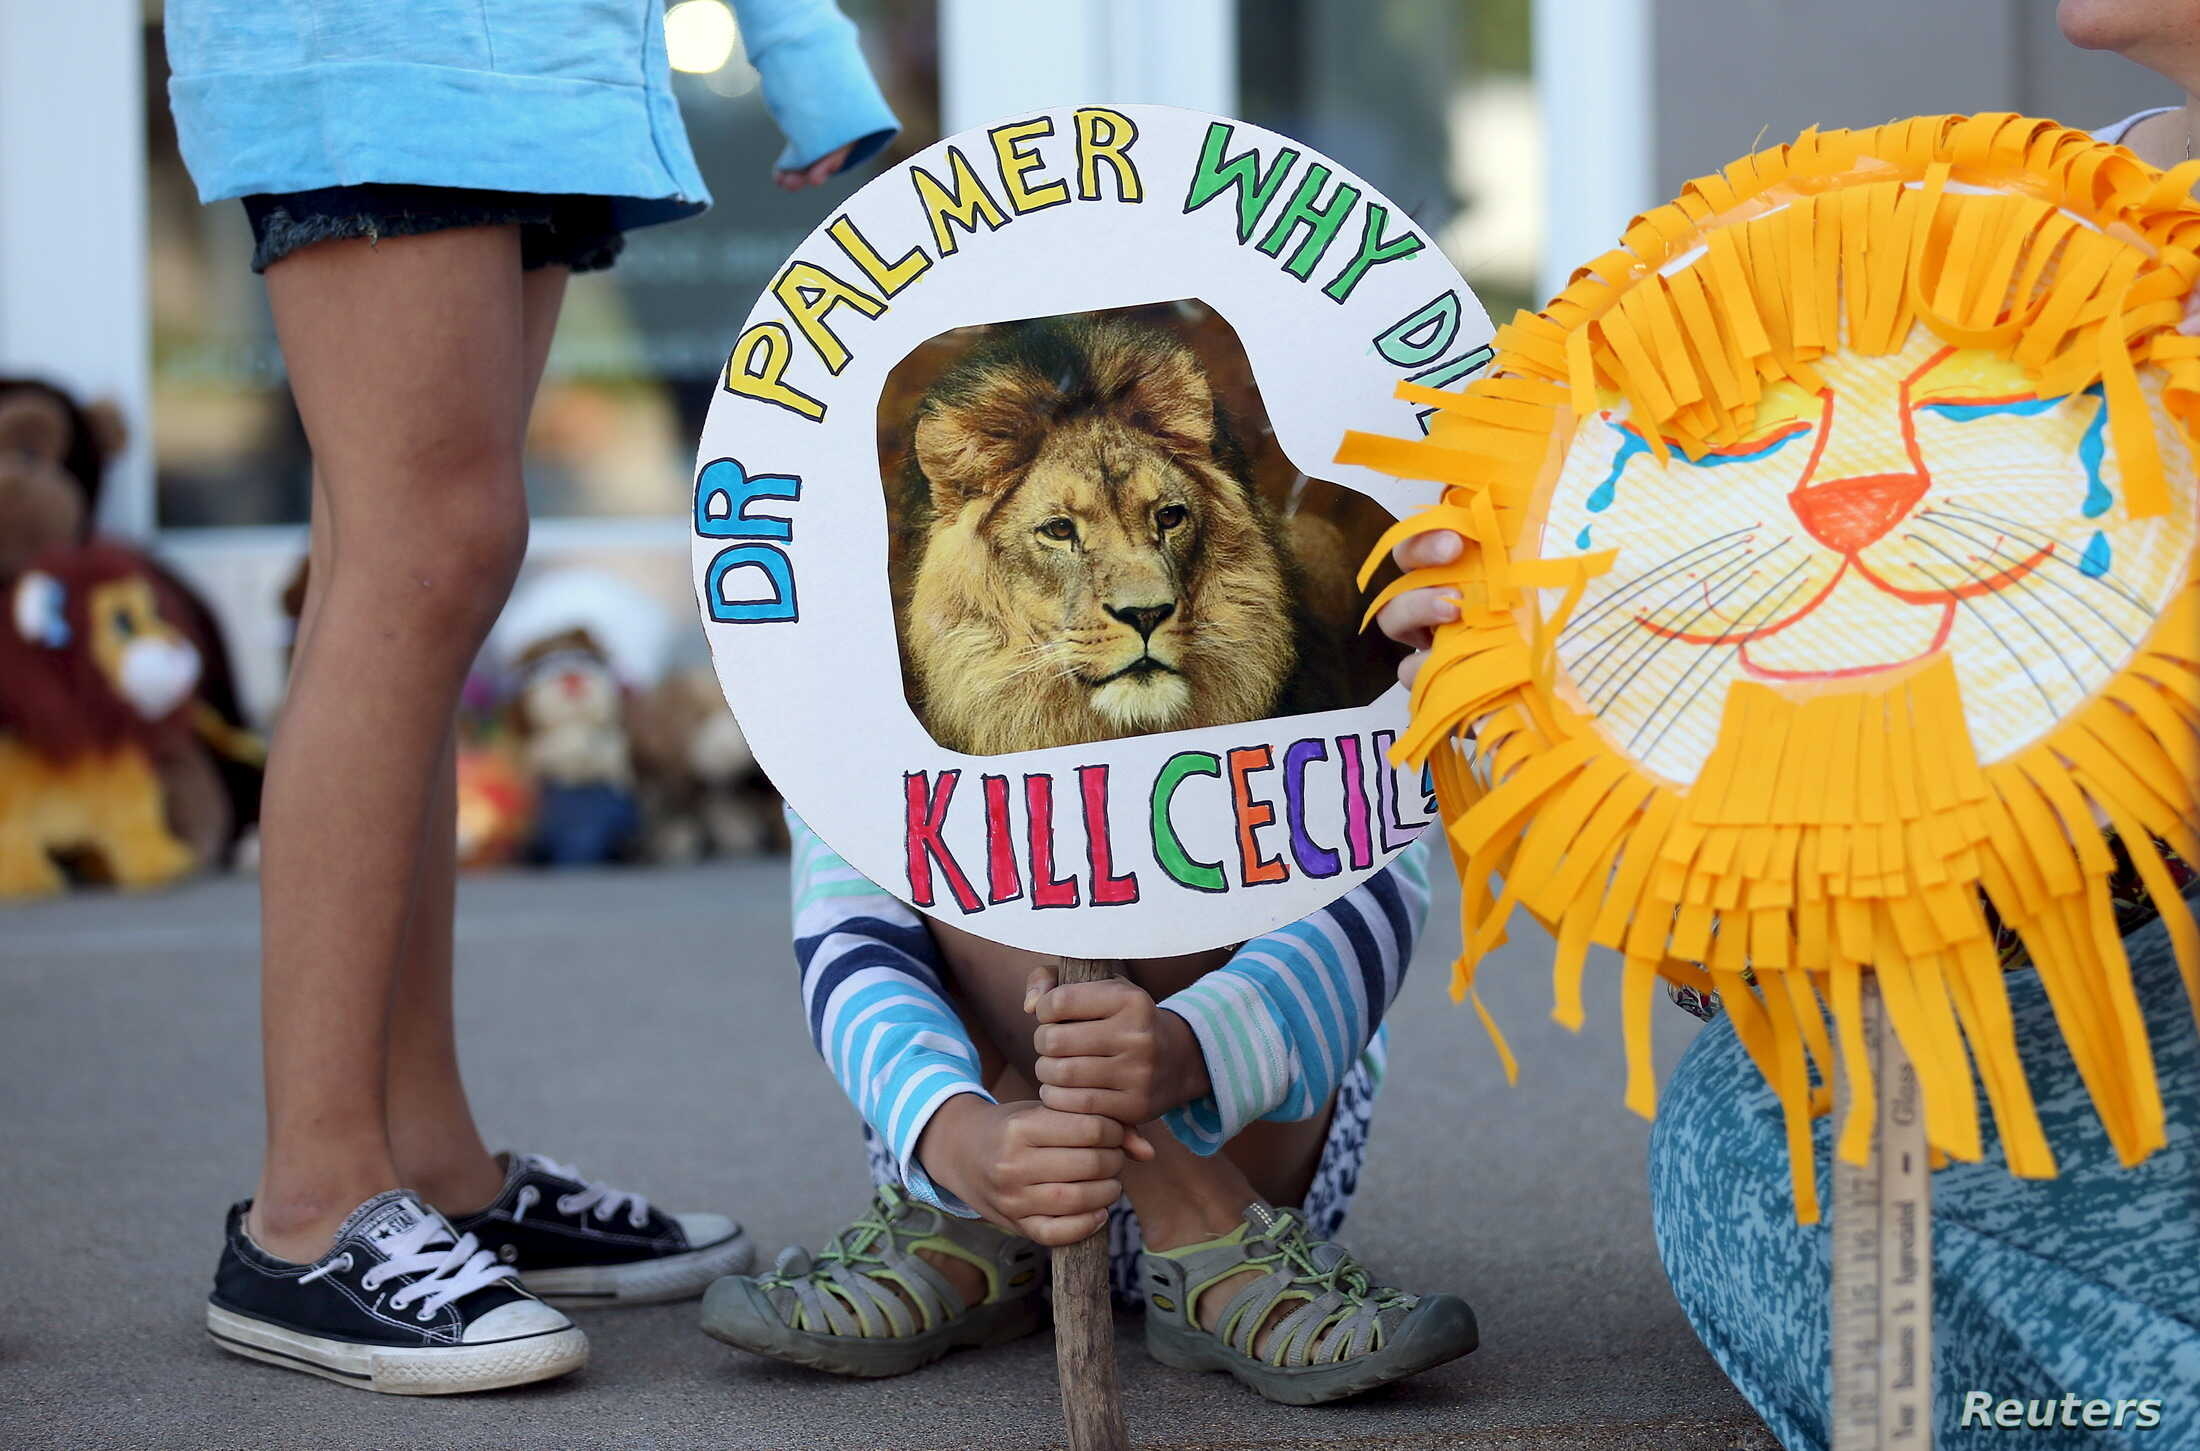 Piper Hoppe, 10, from Minnetonka, Minnesota, holds a sign at the doorway of River Bluff Dental clinic in protest against the killing of a famous lion in Zimbabwe, in Bloomington, Minnesota July 29, 2015. A Zimbabwean court on Wednesday charged a prof...